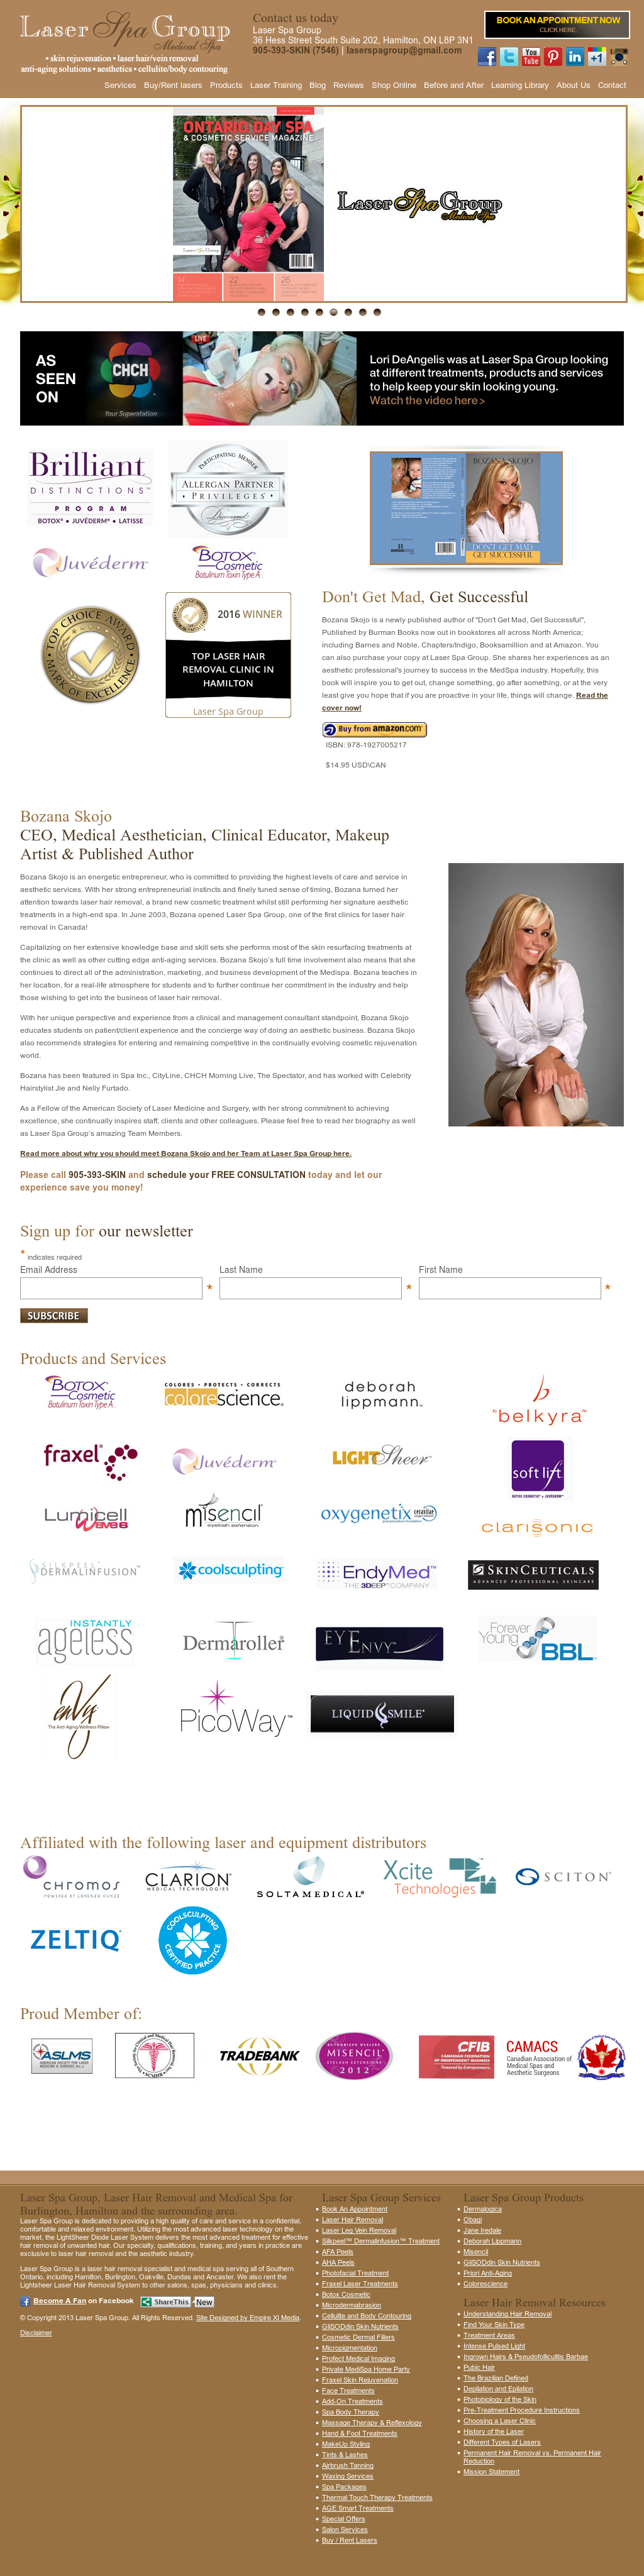 Owler Reports - Laser Spa Group Blog Laser Spa Group Second Location